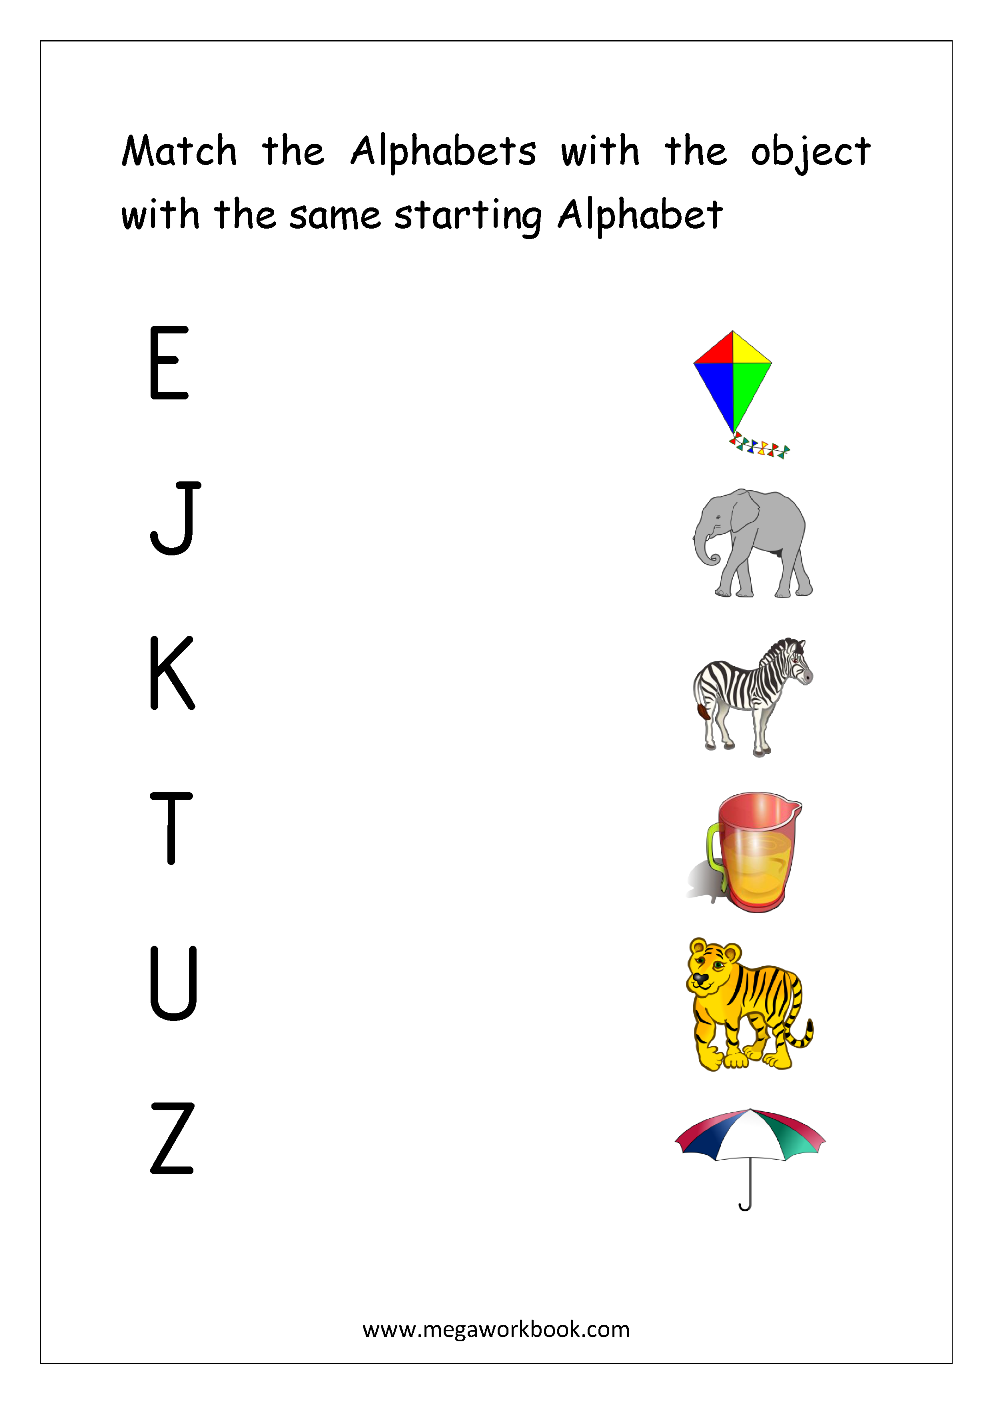 Free English Worksheets - Alphabet Matching - Megaworkbook throughout Alphabet Matching Worksheets Pdf